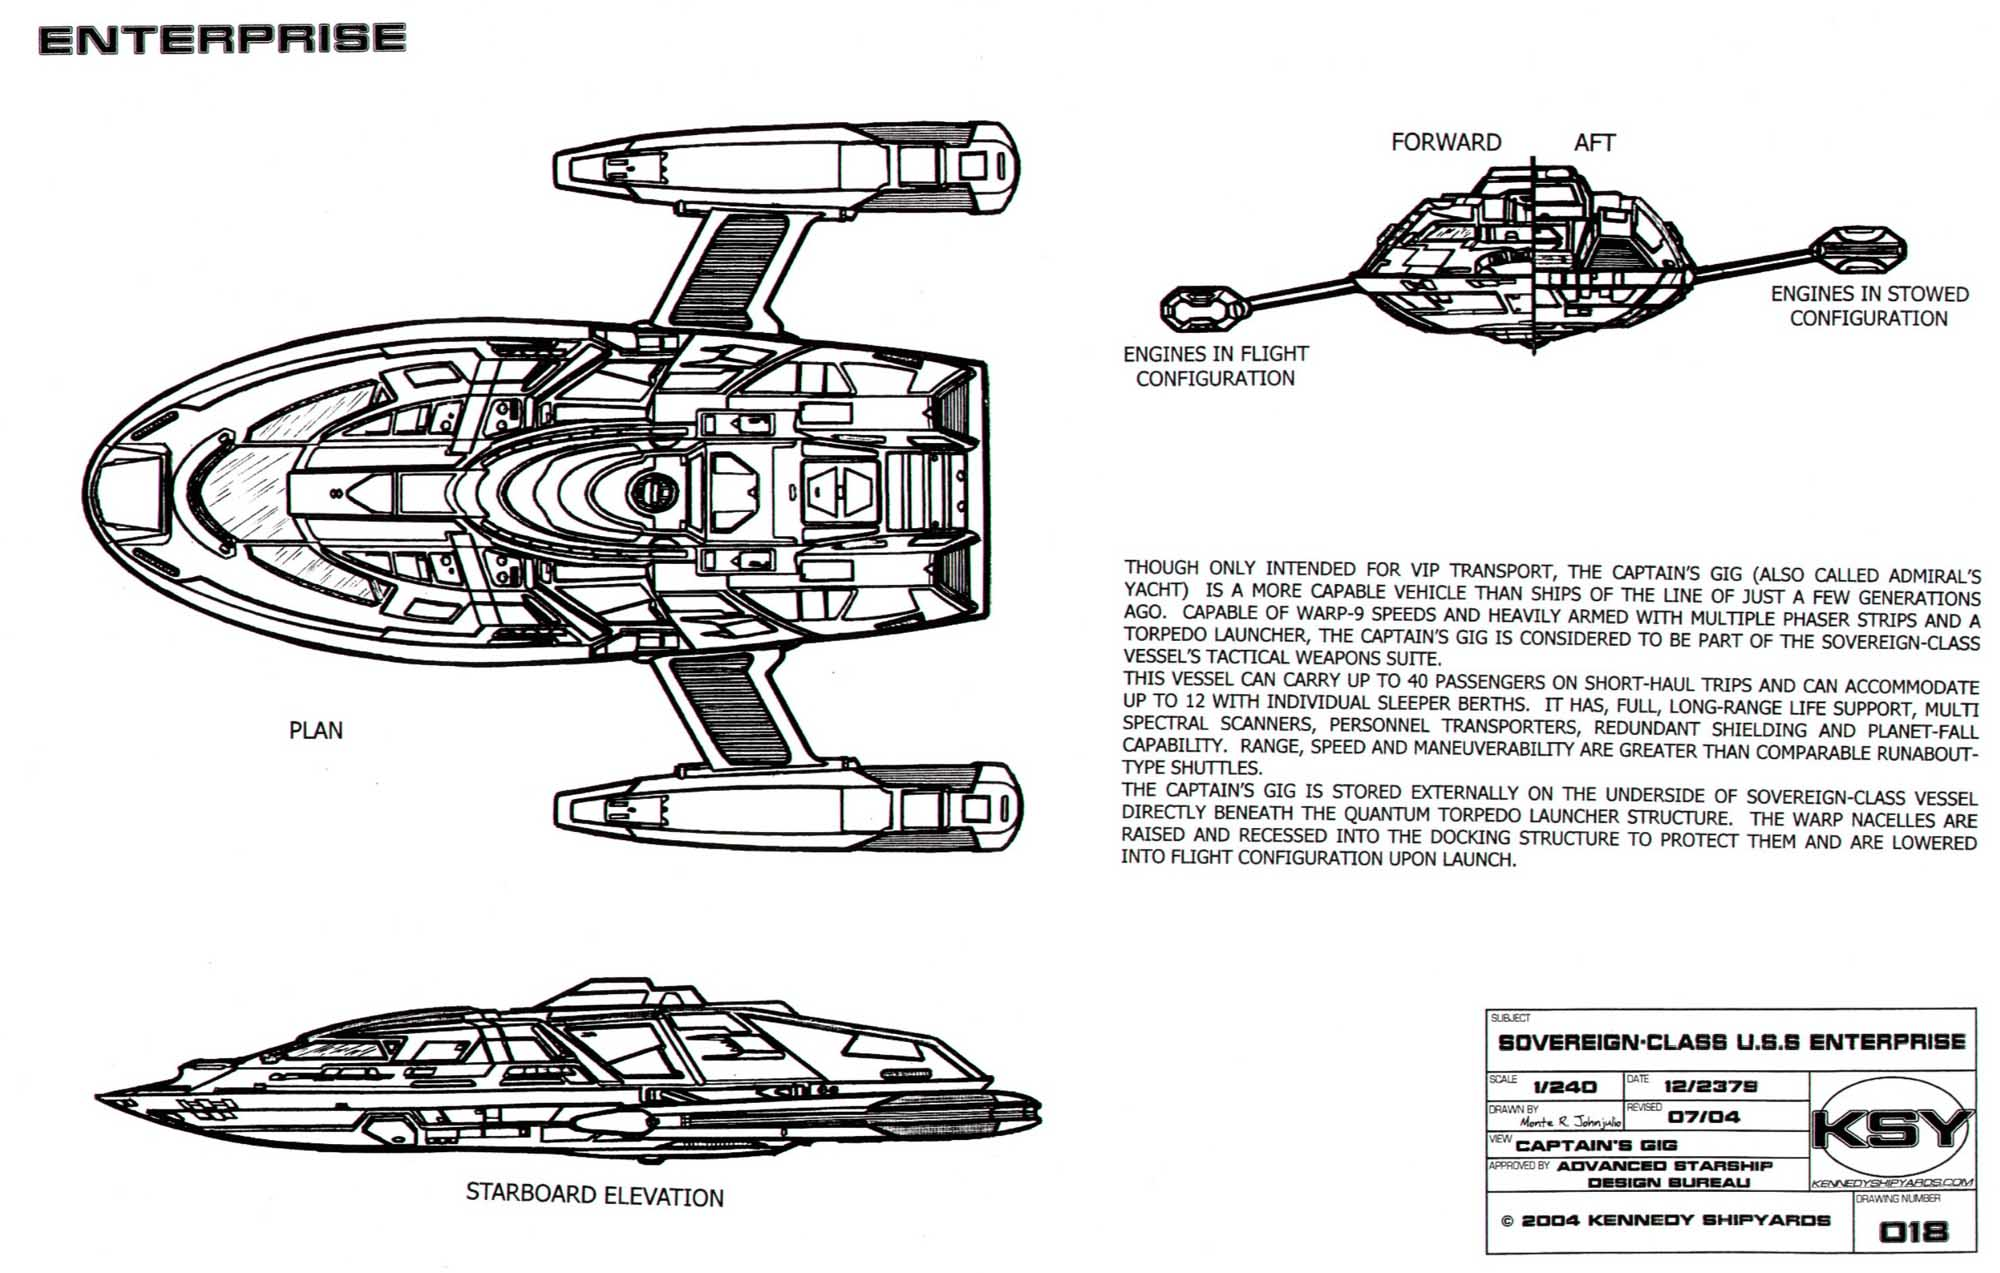 Image sovereign class starship ncc 1701 e sheet 18 1 g memory sovereign class starship ncc 1701 e sheet 18 1 g malvernweather Gallery